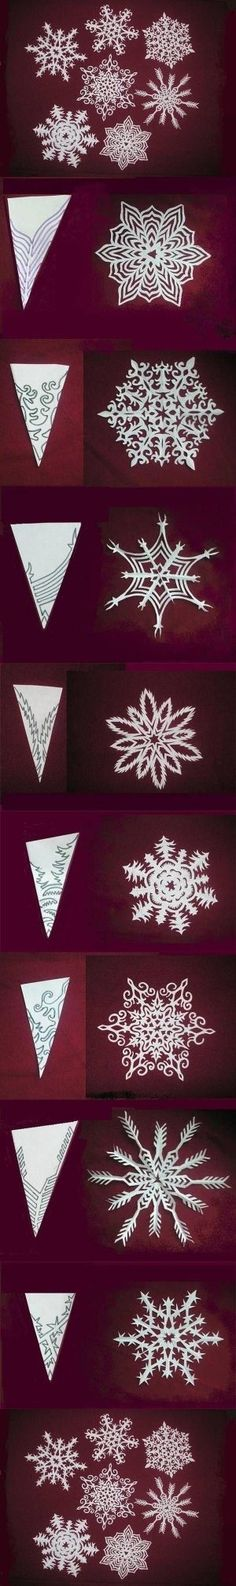 DIY Snowflakes Paper Pattern Tutorial by susieQ:)